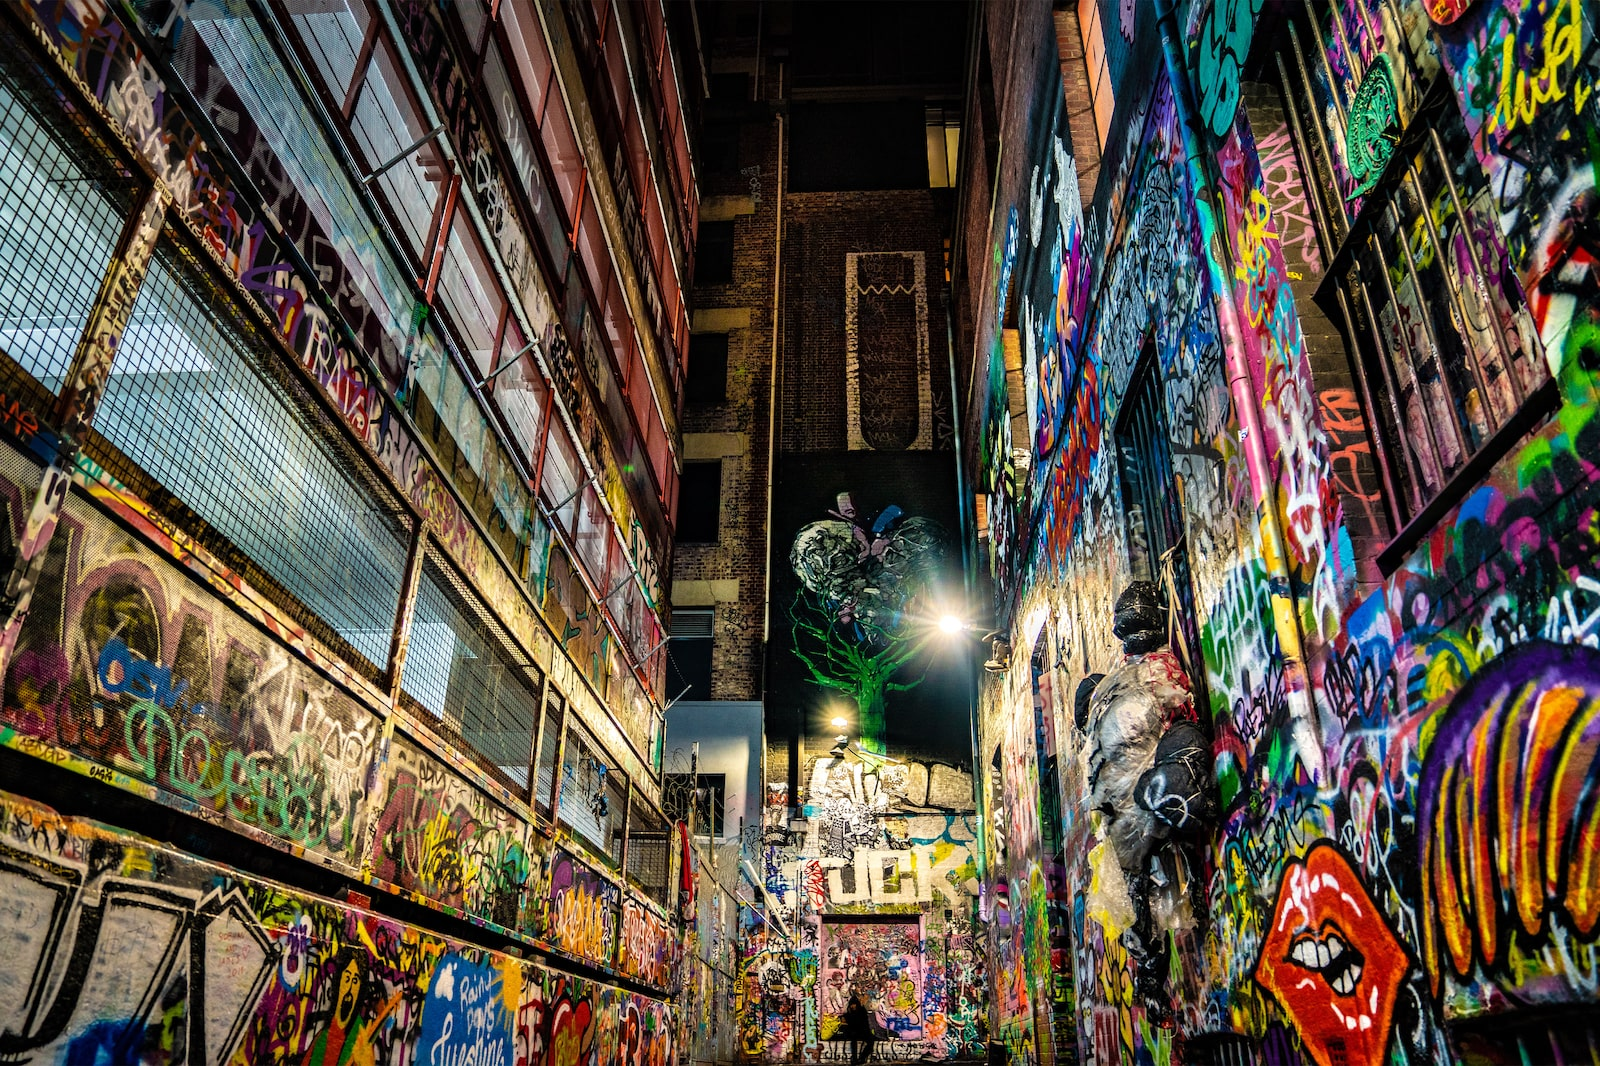 Colorful graffiti lanes facing a brick wall in Hosier Lane